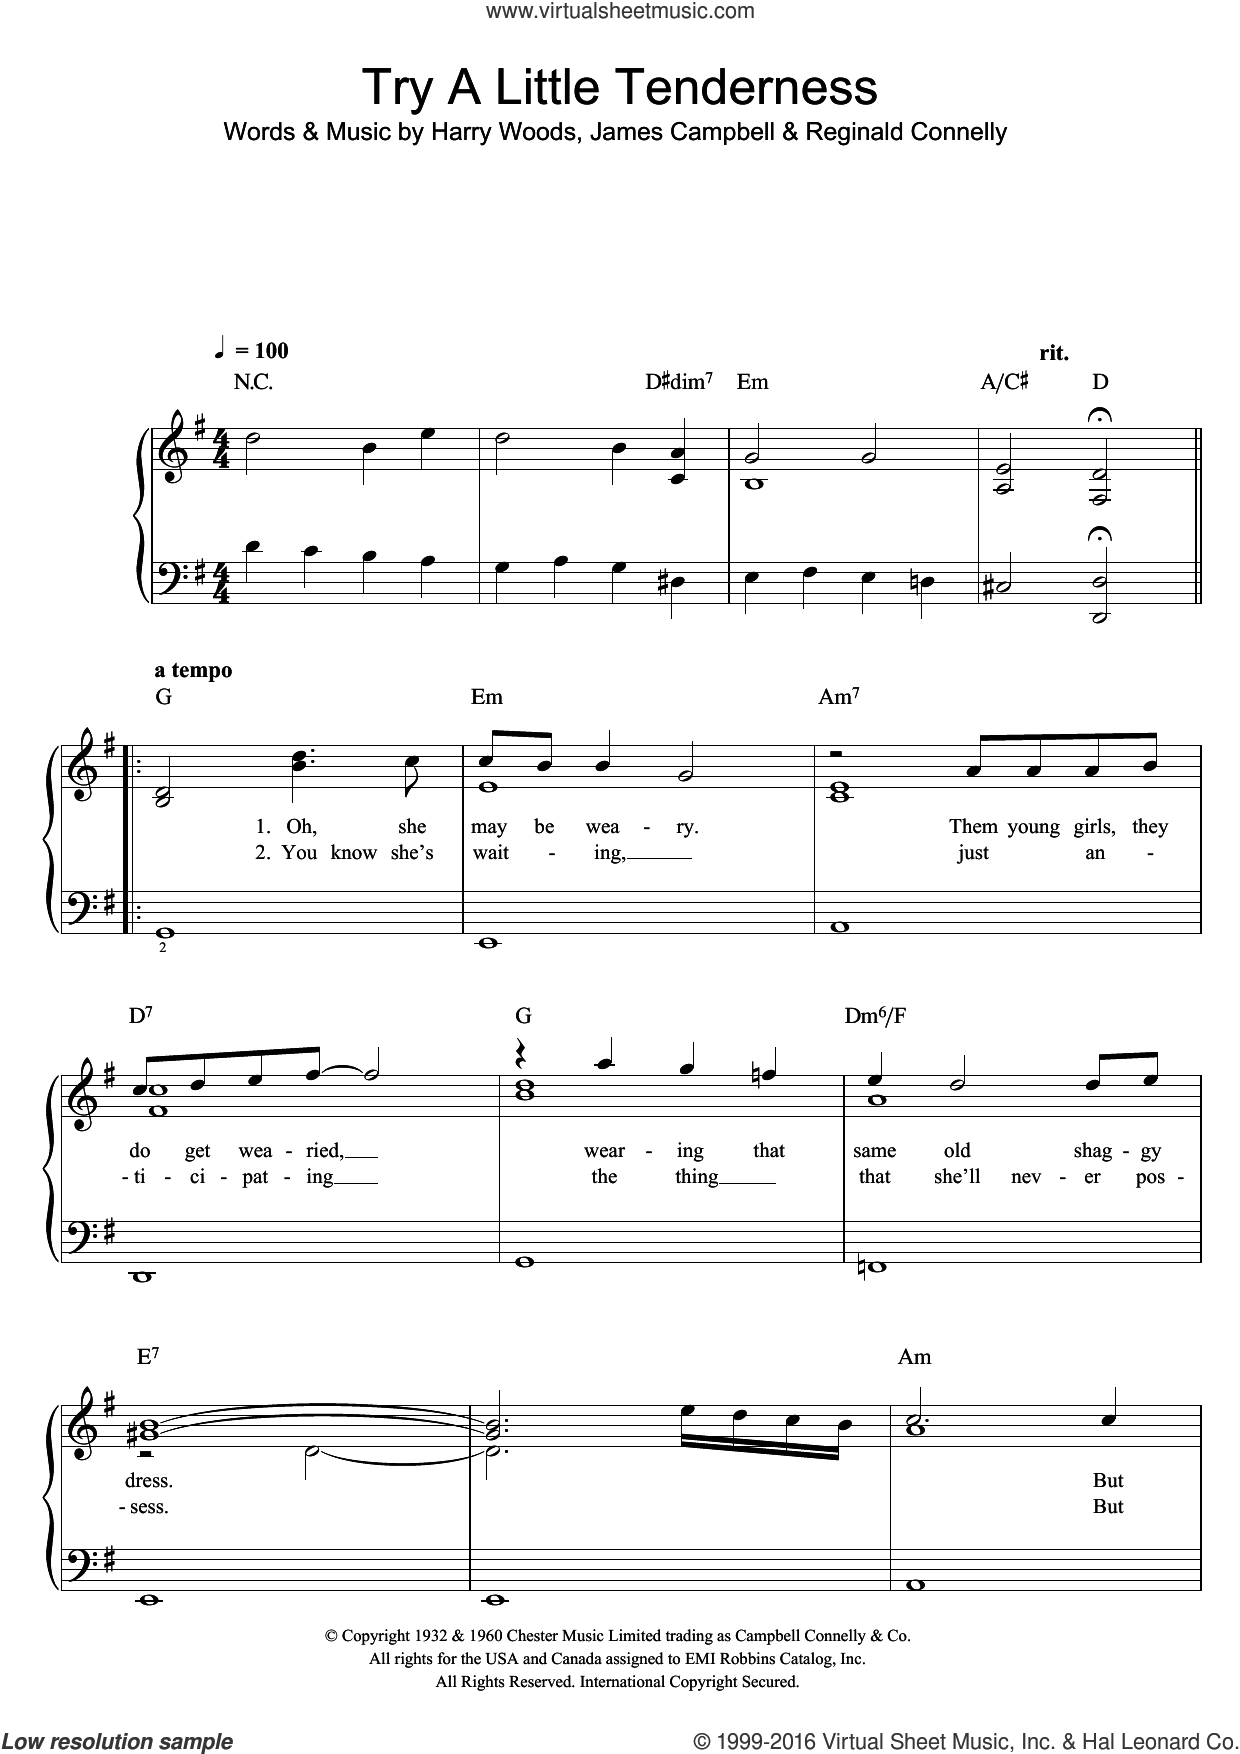 Try A Little Tenderness sheet music for voice and piano by Otis Redding, The Commitments, Harry Woods, James Campbell and Reg Connelly, intermediate skill level